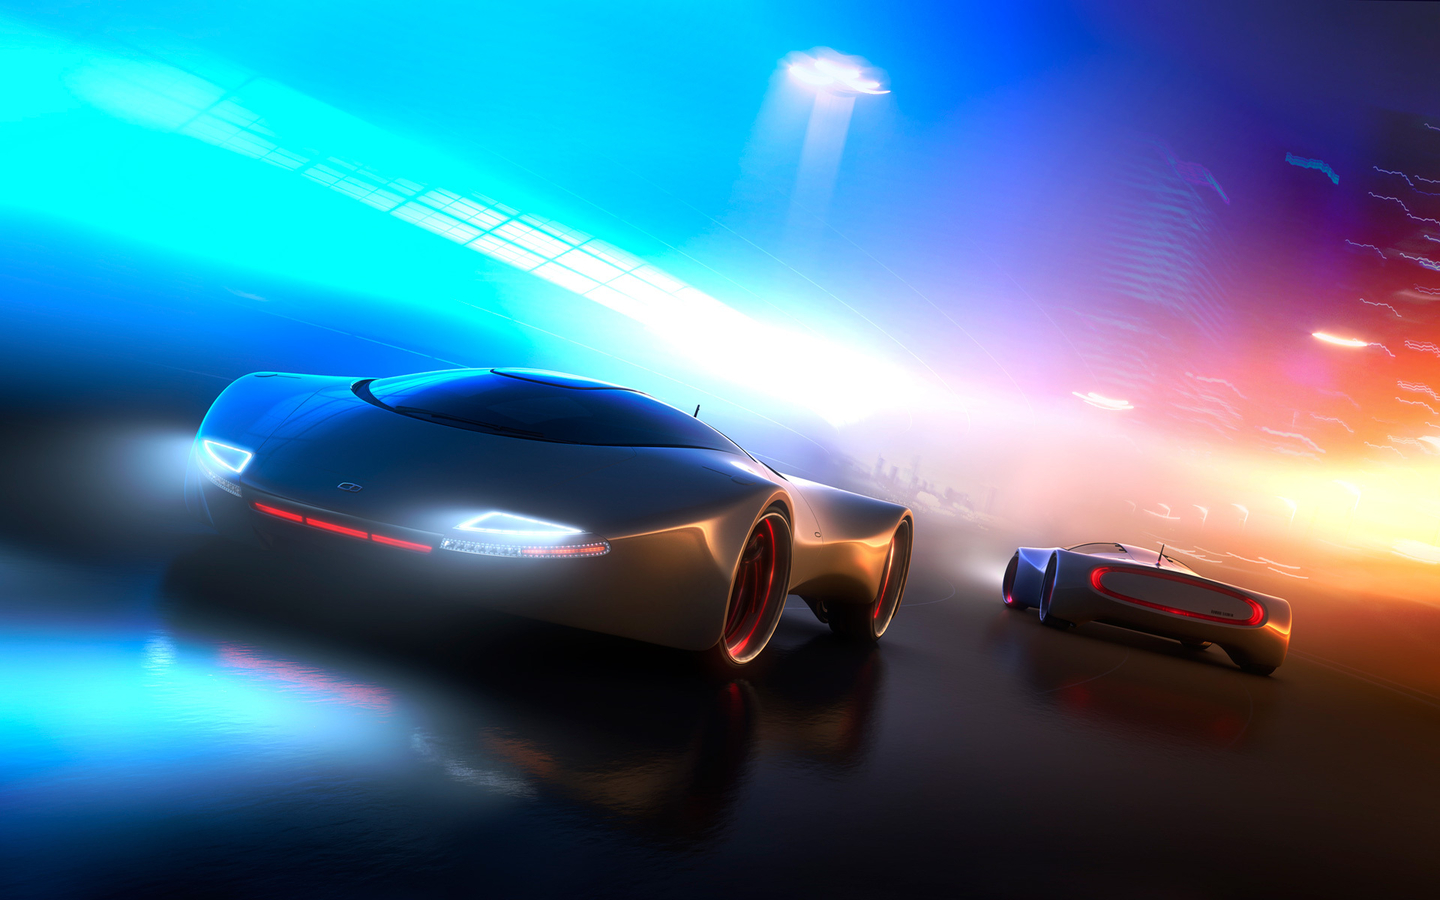 Most Beautiful Car Front Back Pose Multi Color Shining Lights Background Hd Wallpapers